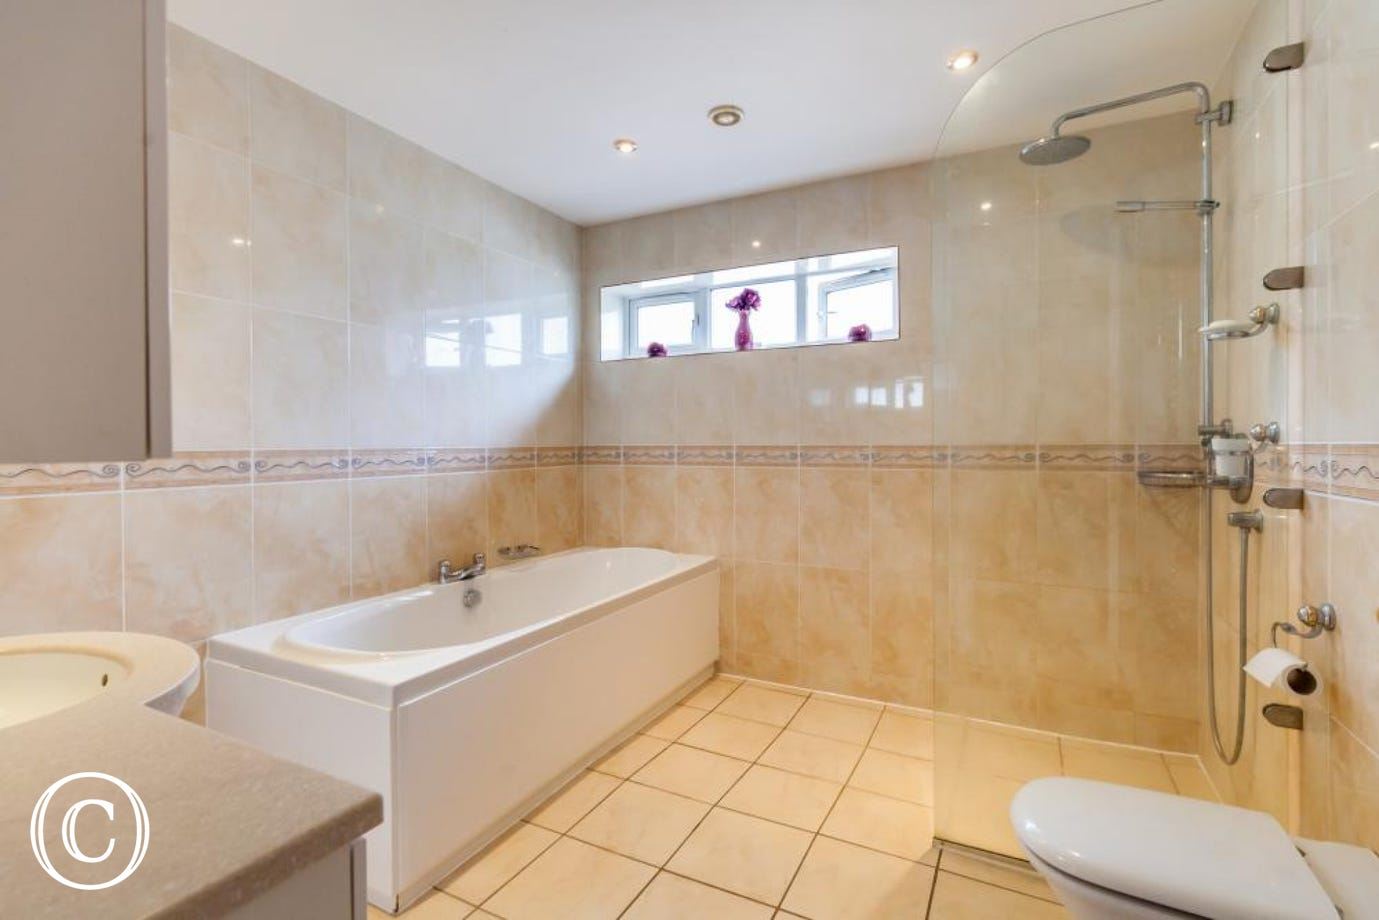 Shower or Bath in the En Suite - The Choice is Yours!